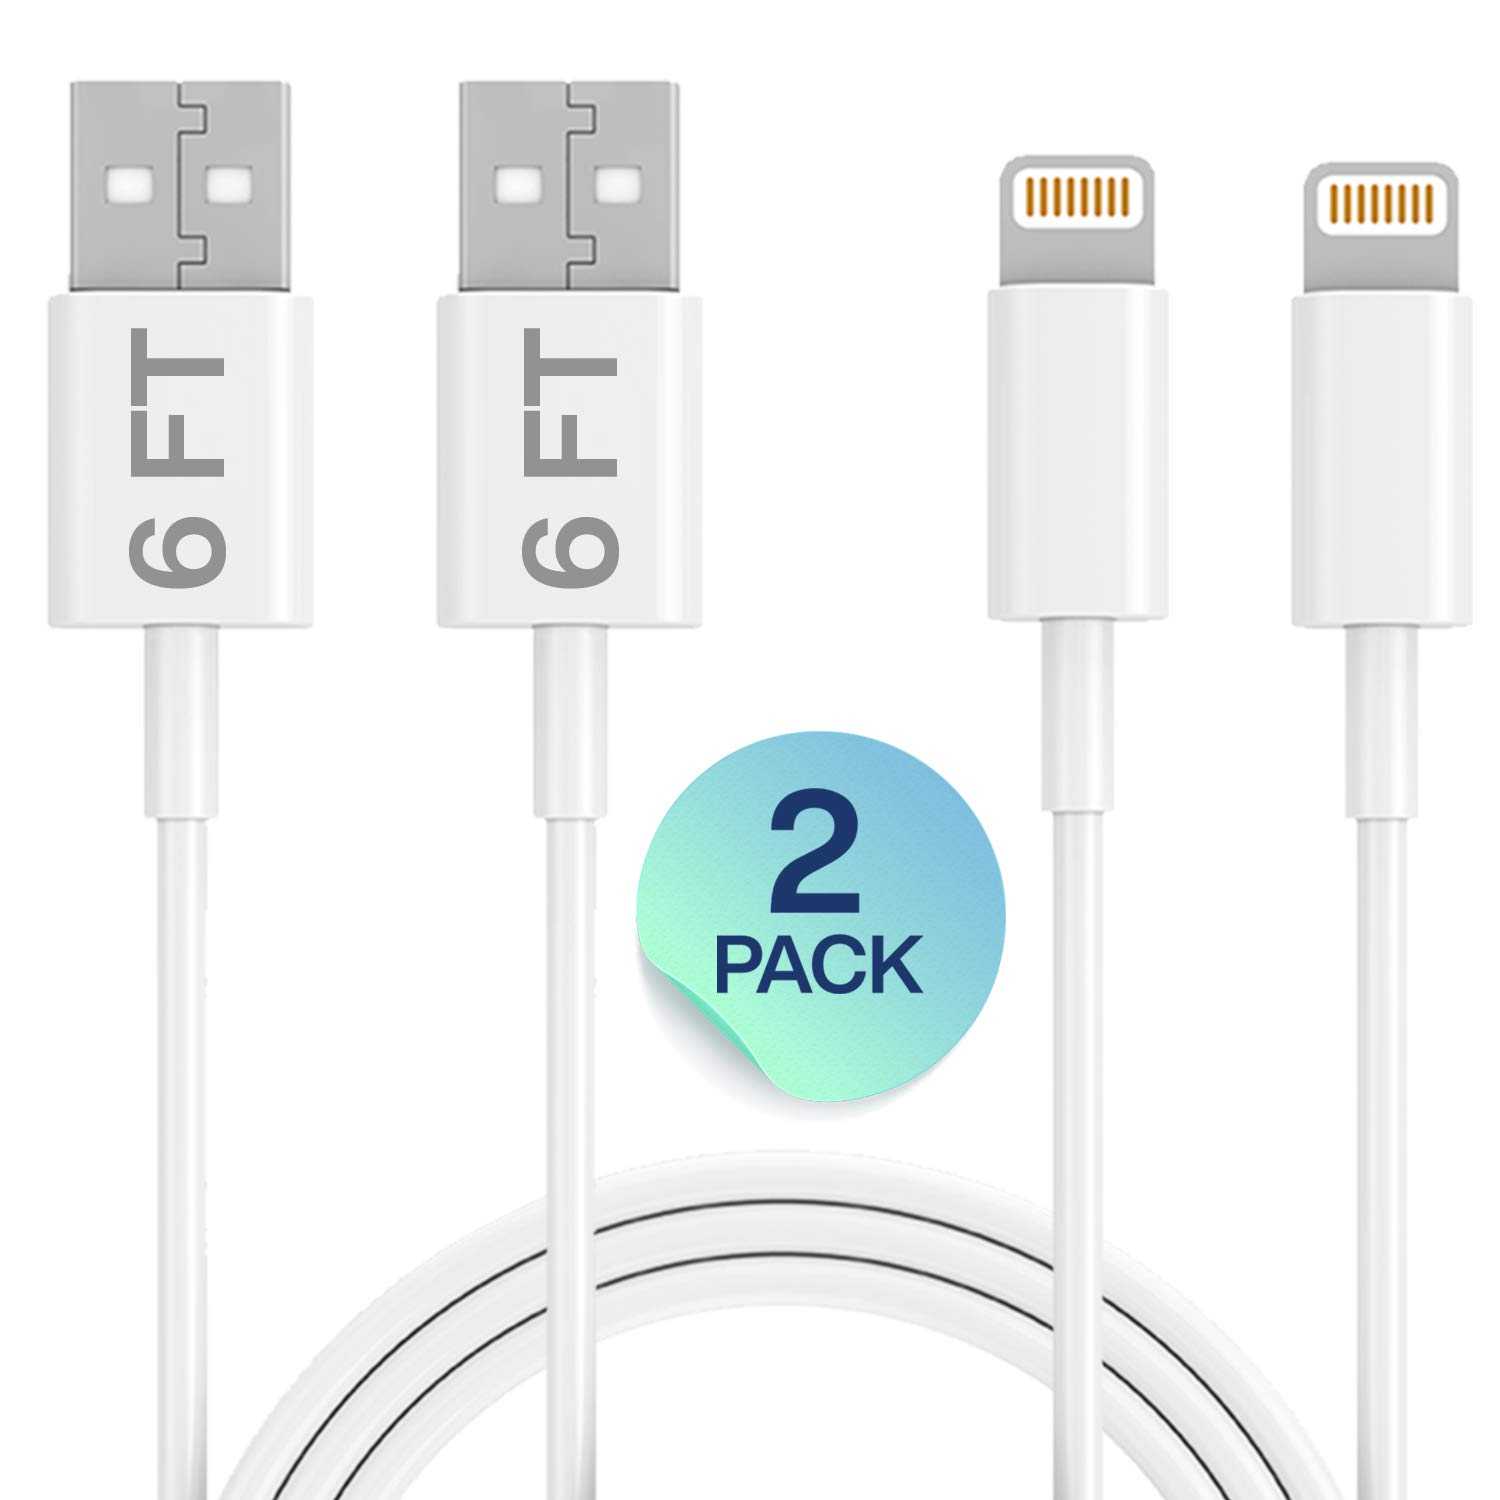 for Apple iPhone Xs,Xs Max,XR,X,8,8 Plus,7,7 Plus,6S,6S Plus,iPad Air,Mini,iPod Touch,Case 2 Pack 6FT USB Cable Infinite Power iPhone Lightning Cable Set Fast Charging /& Syncing Cord